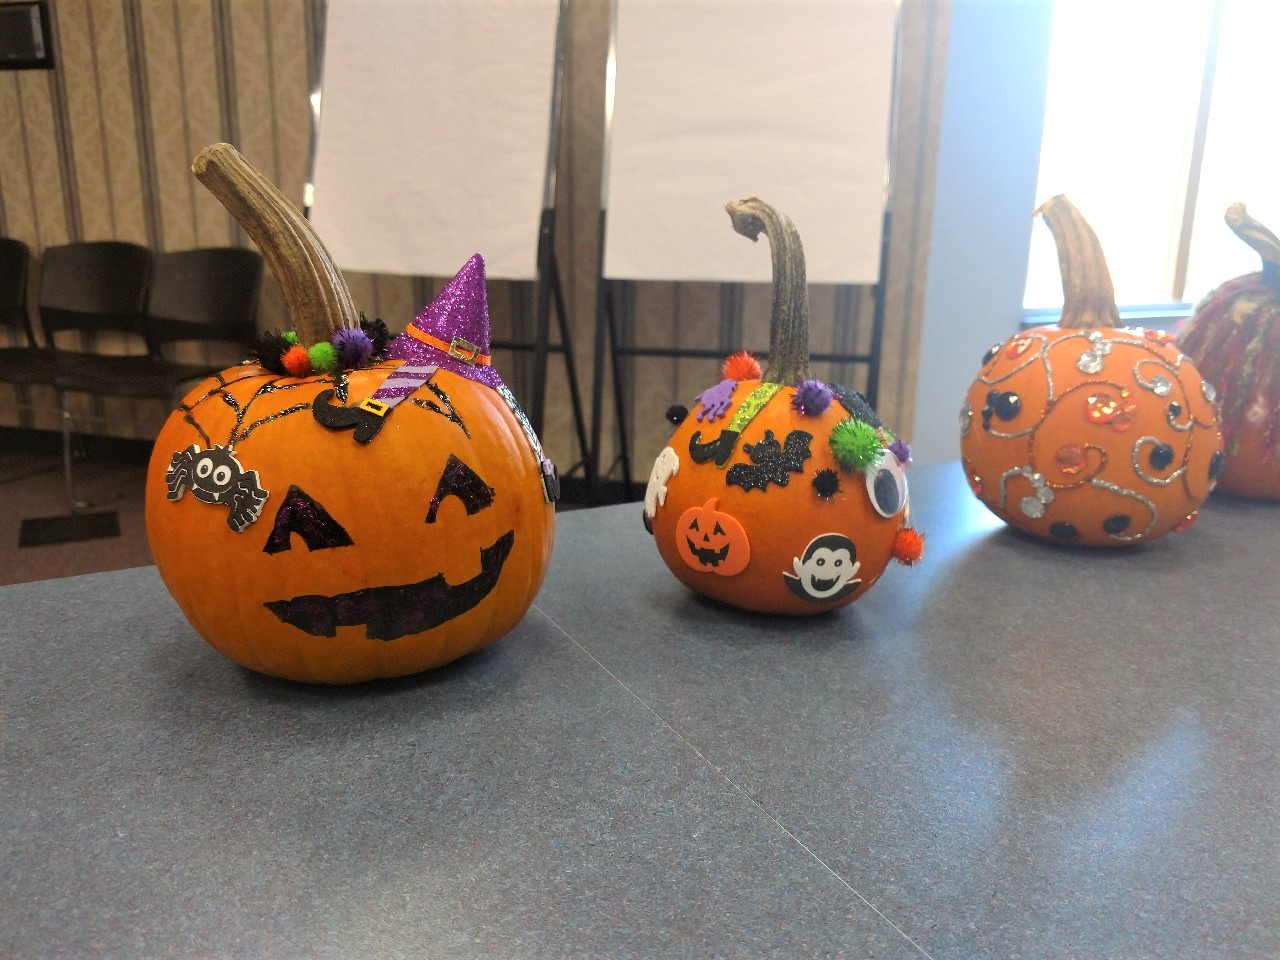 RCCS celebrates fall decorating pumpkins